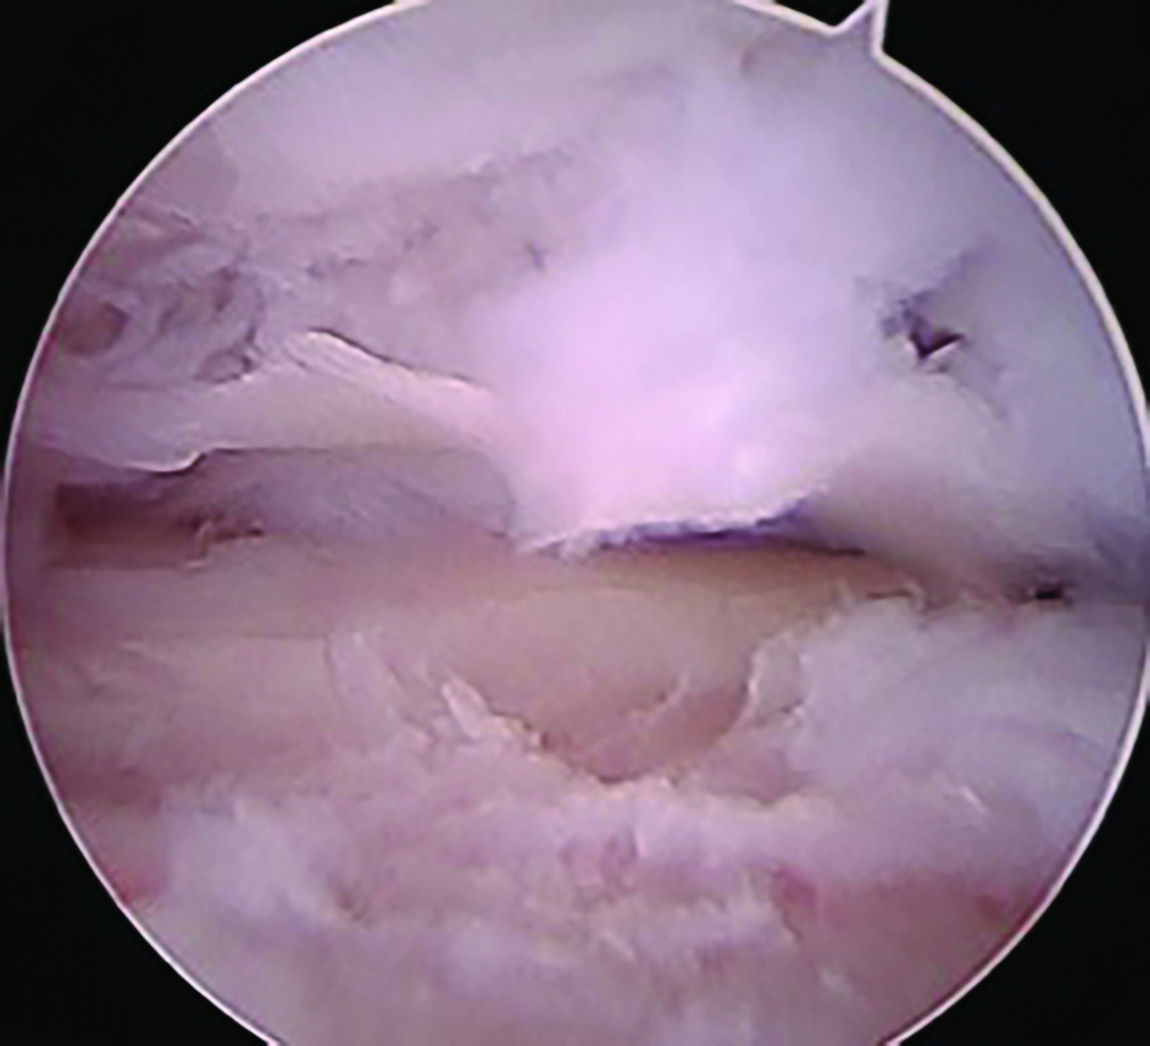 Here one can see arthroscopic images depicting significant arthrofibrosis with grade III-IV chrondromalacia in a patient  after talar ORIF. Ahn and colleagues noted arthrofibrosis among common arthroscopic findings in their case series.